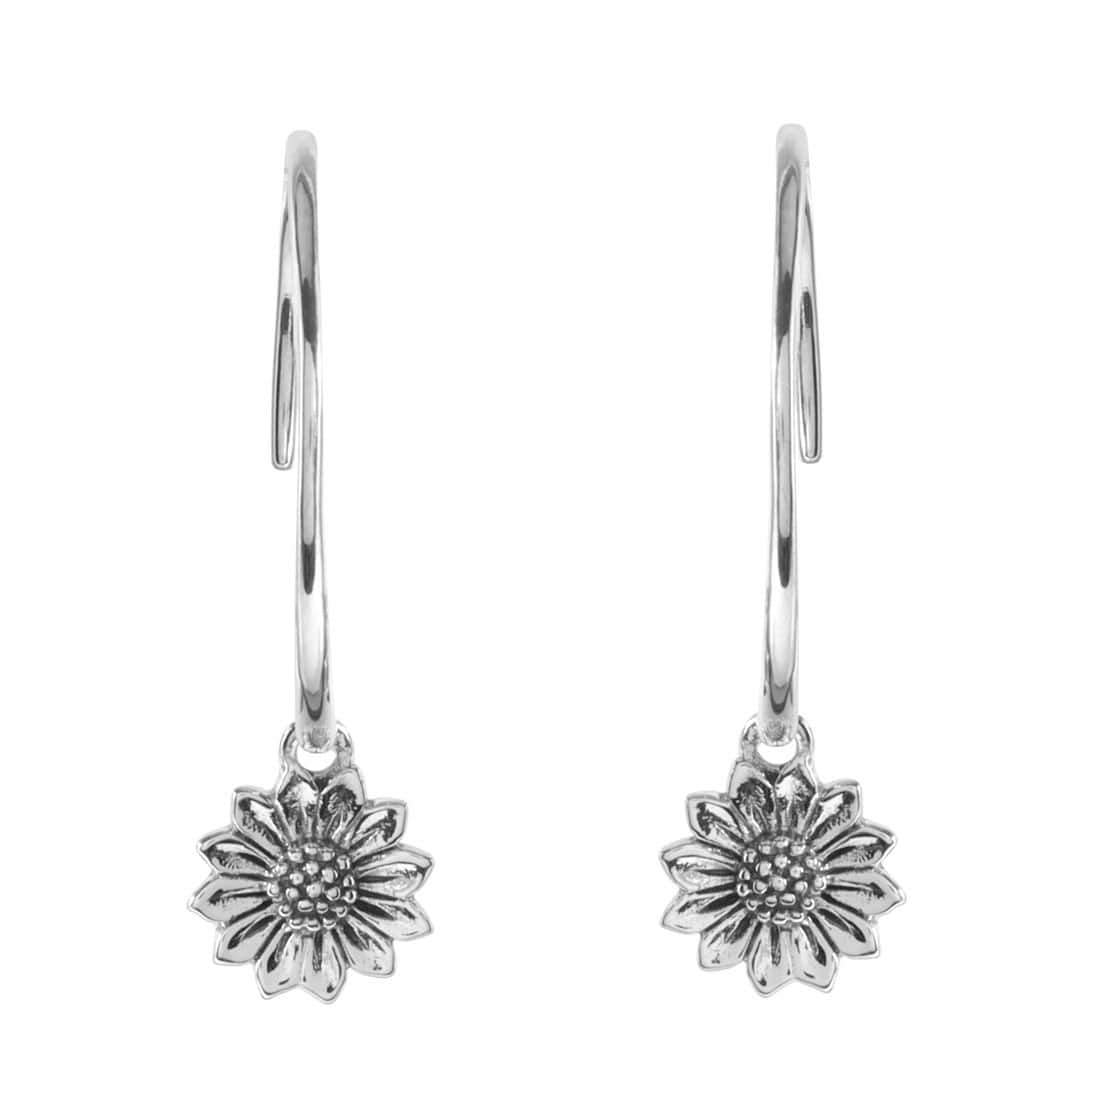 Midsummer Star Earrings Delicate Sunflower Hoops